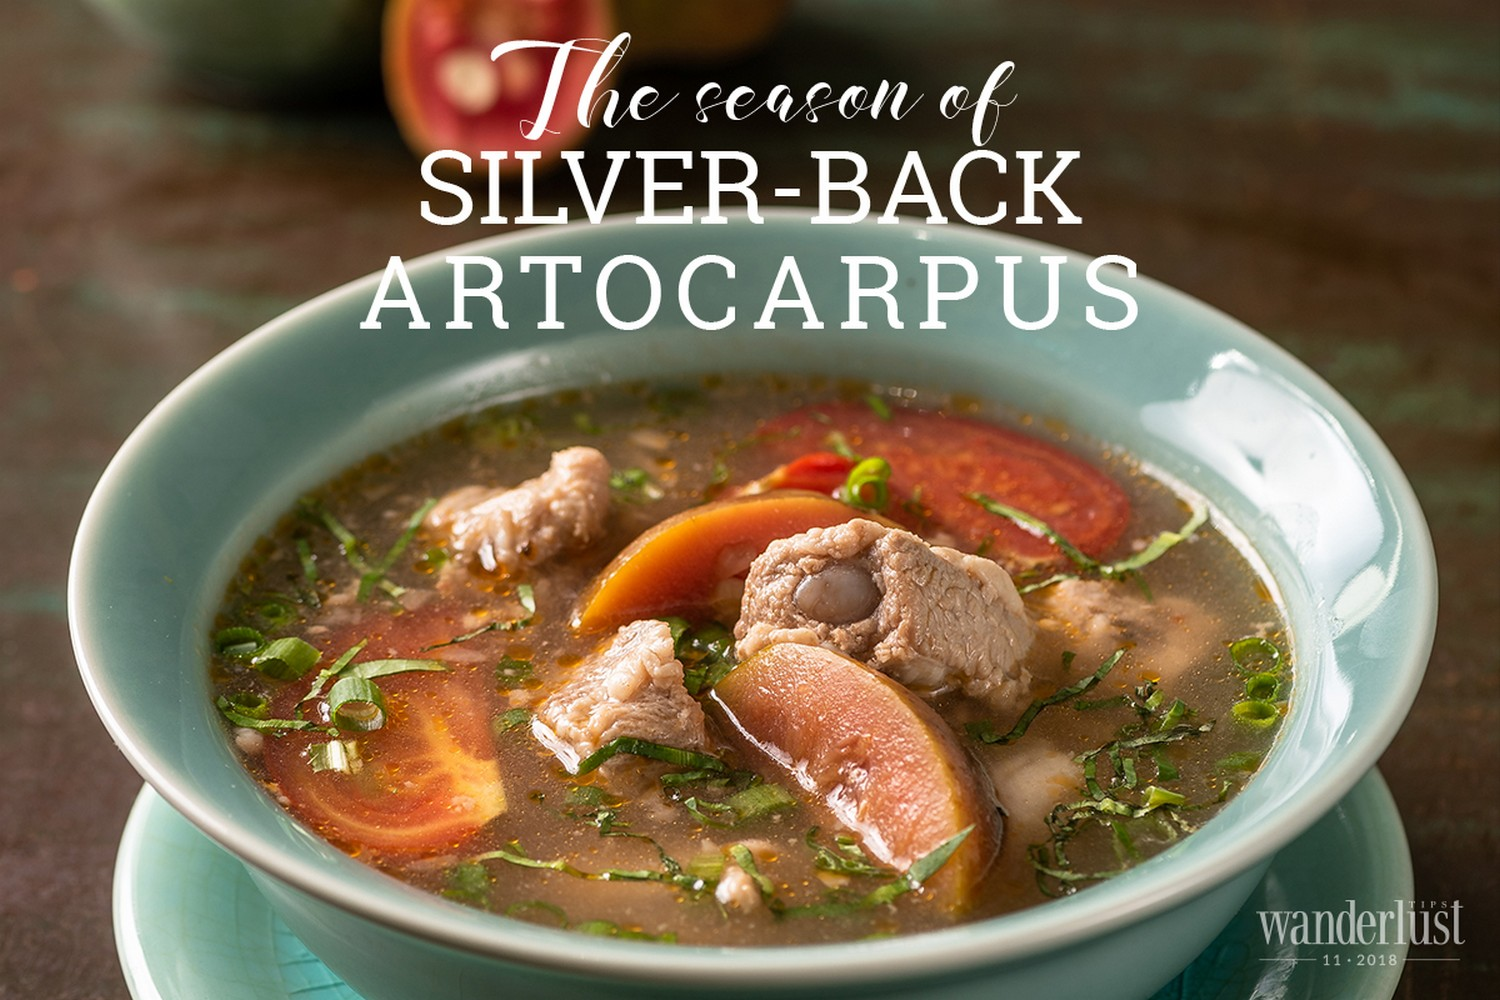 Wanderlust Tips Magazine | The season of Silver-Back Artocarpus